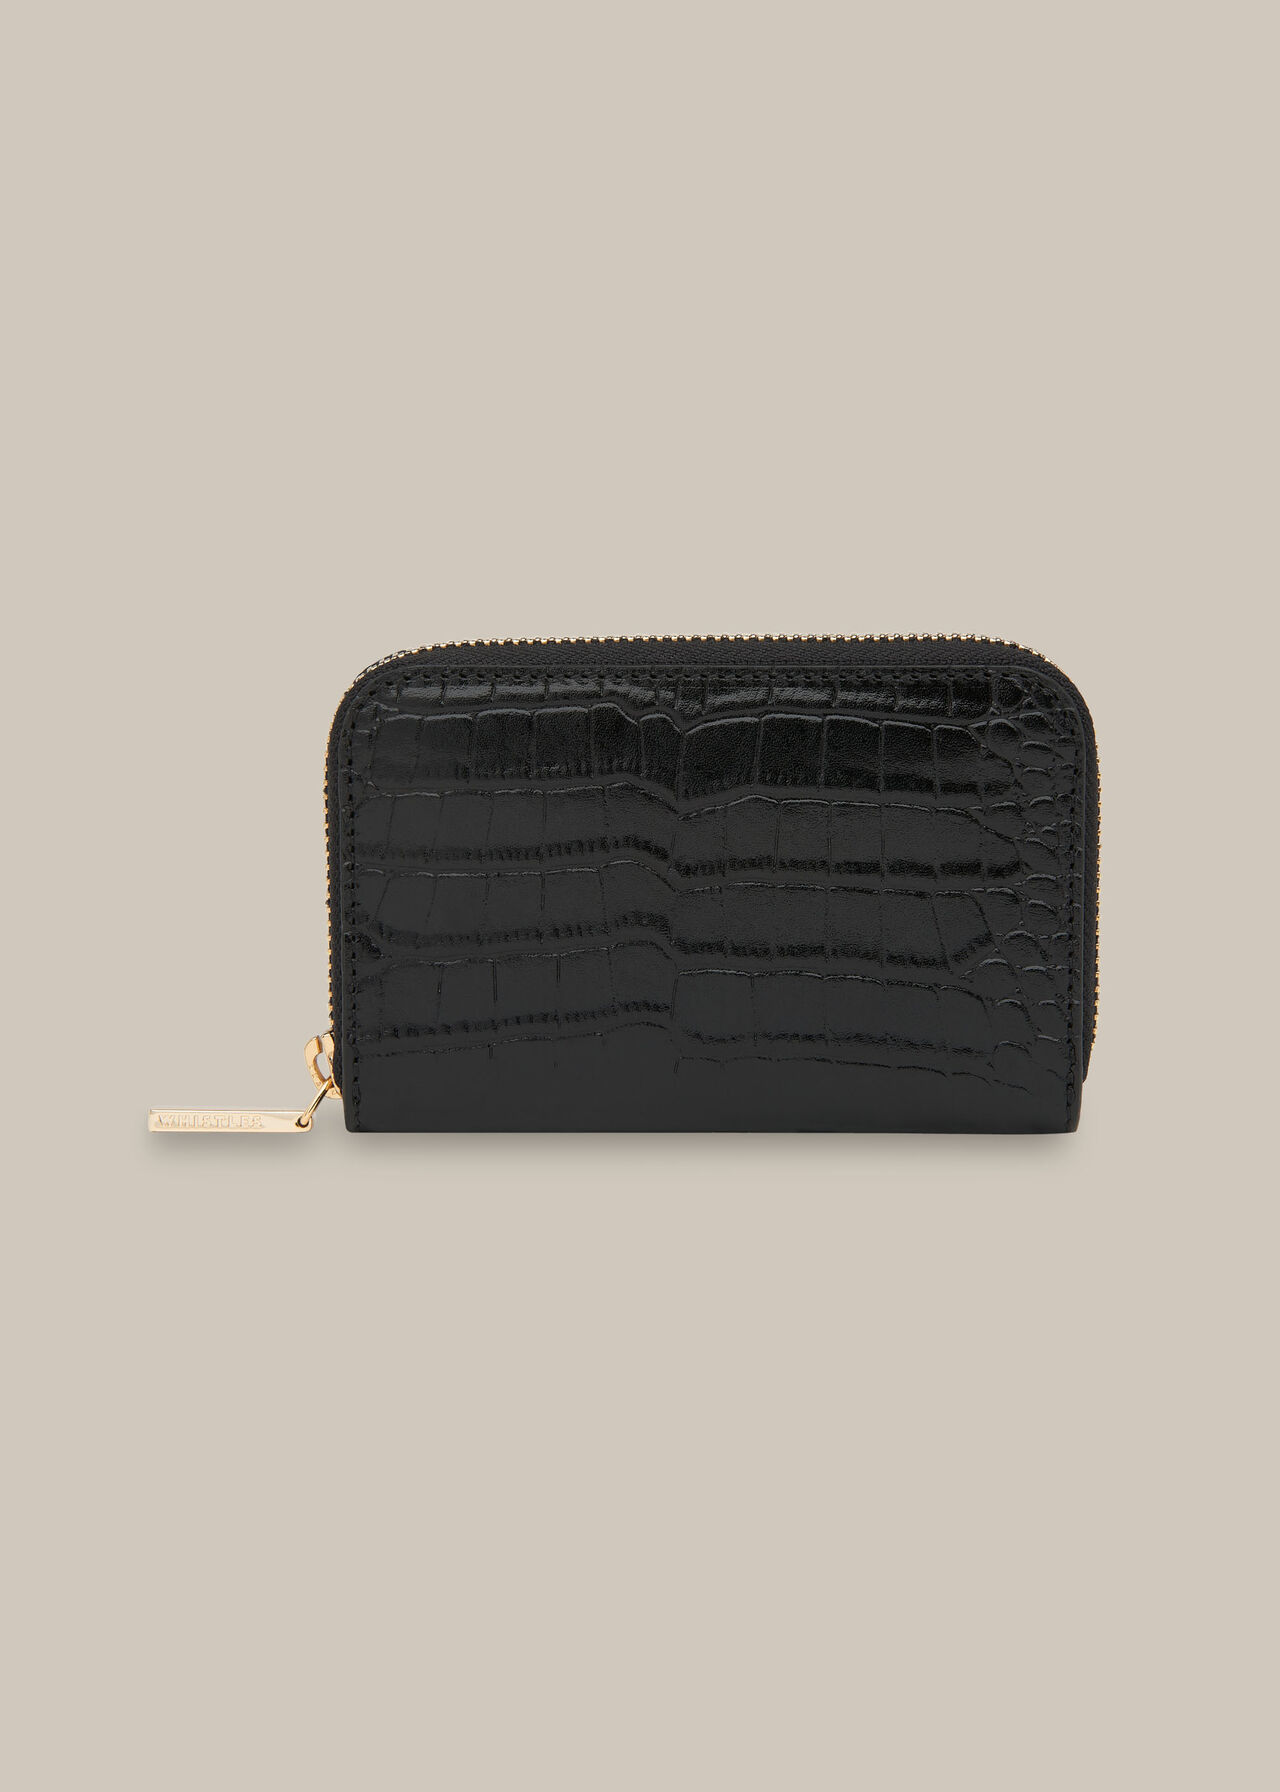 Kira Shiny Croc Zip Purse